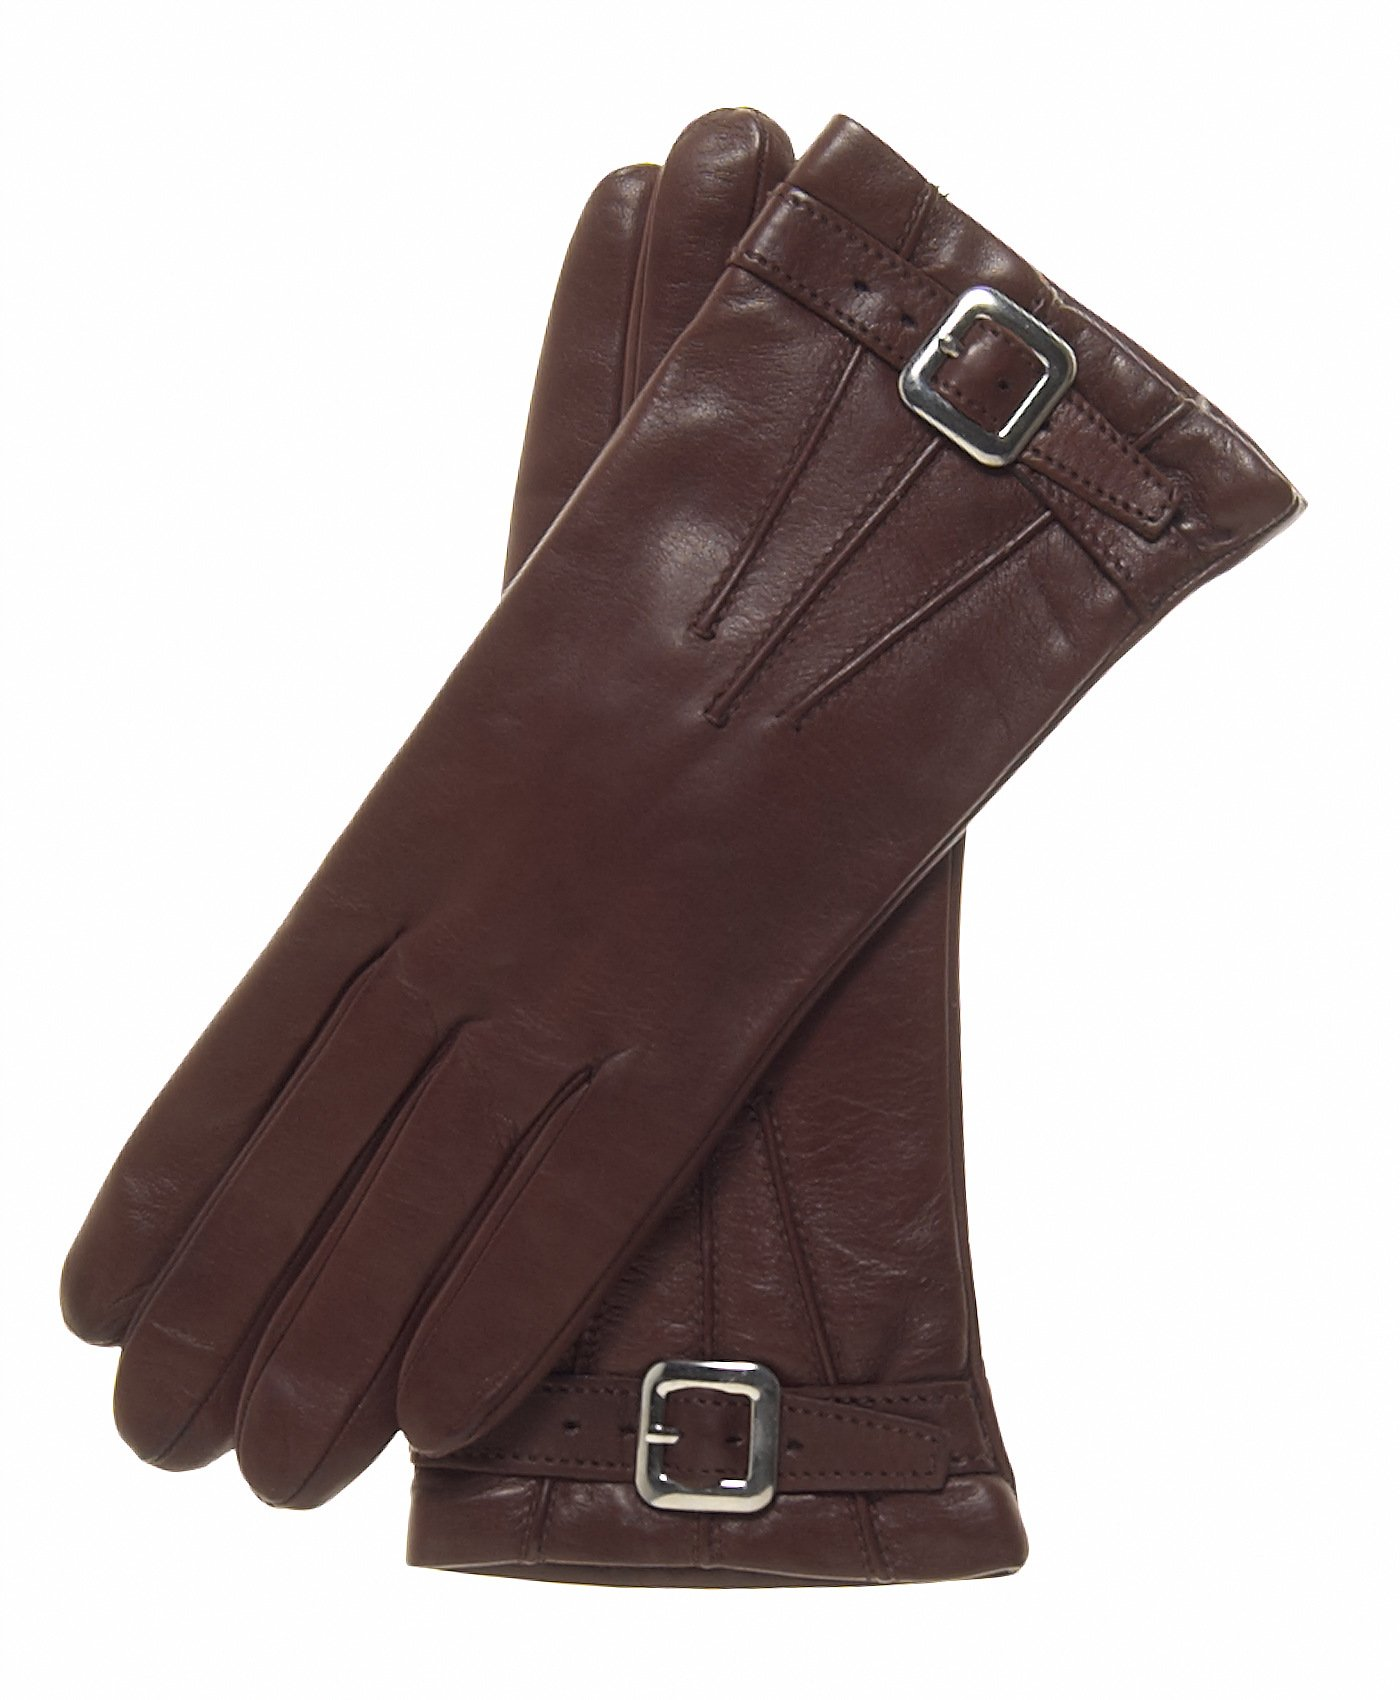 Fratelli Orsini Women's Italian Cashmere Lined Leather Gloves with Buckle Size 7 Color Brown